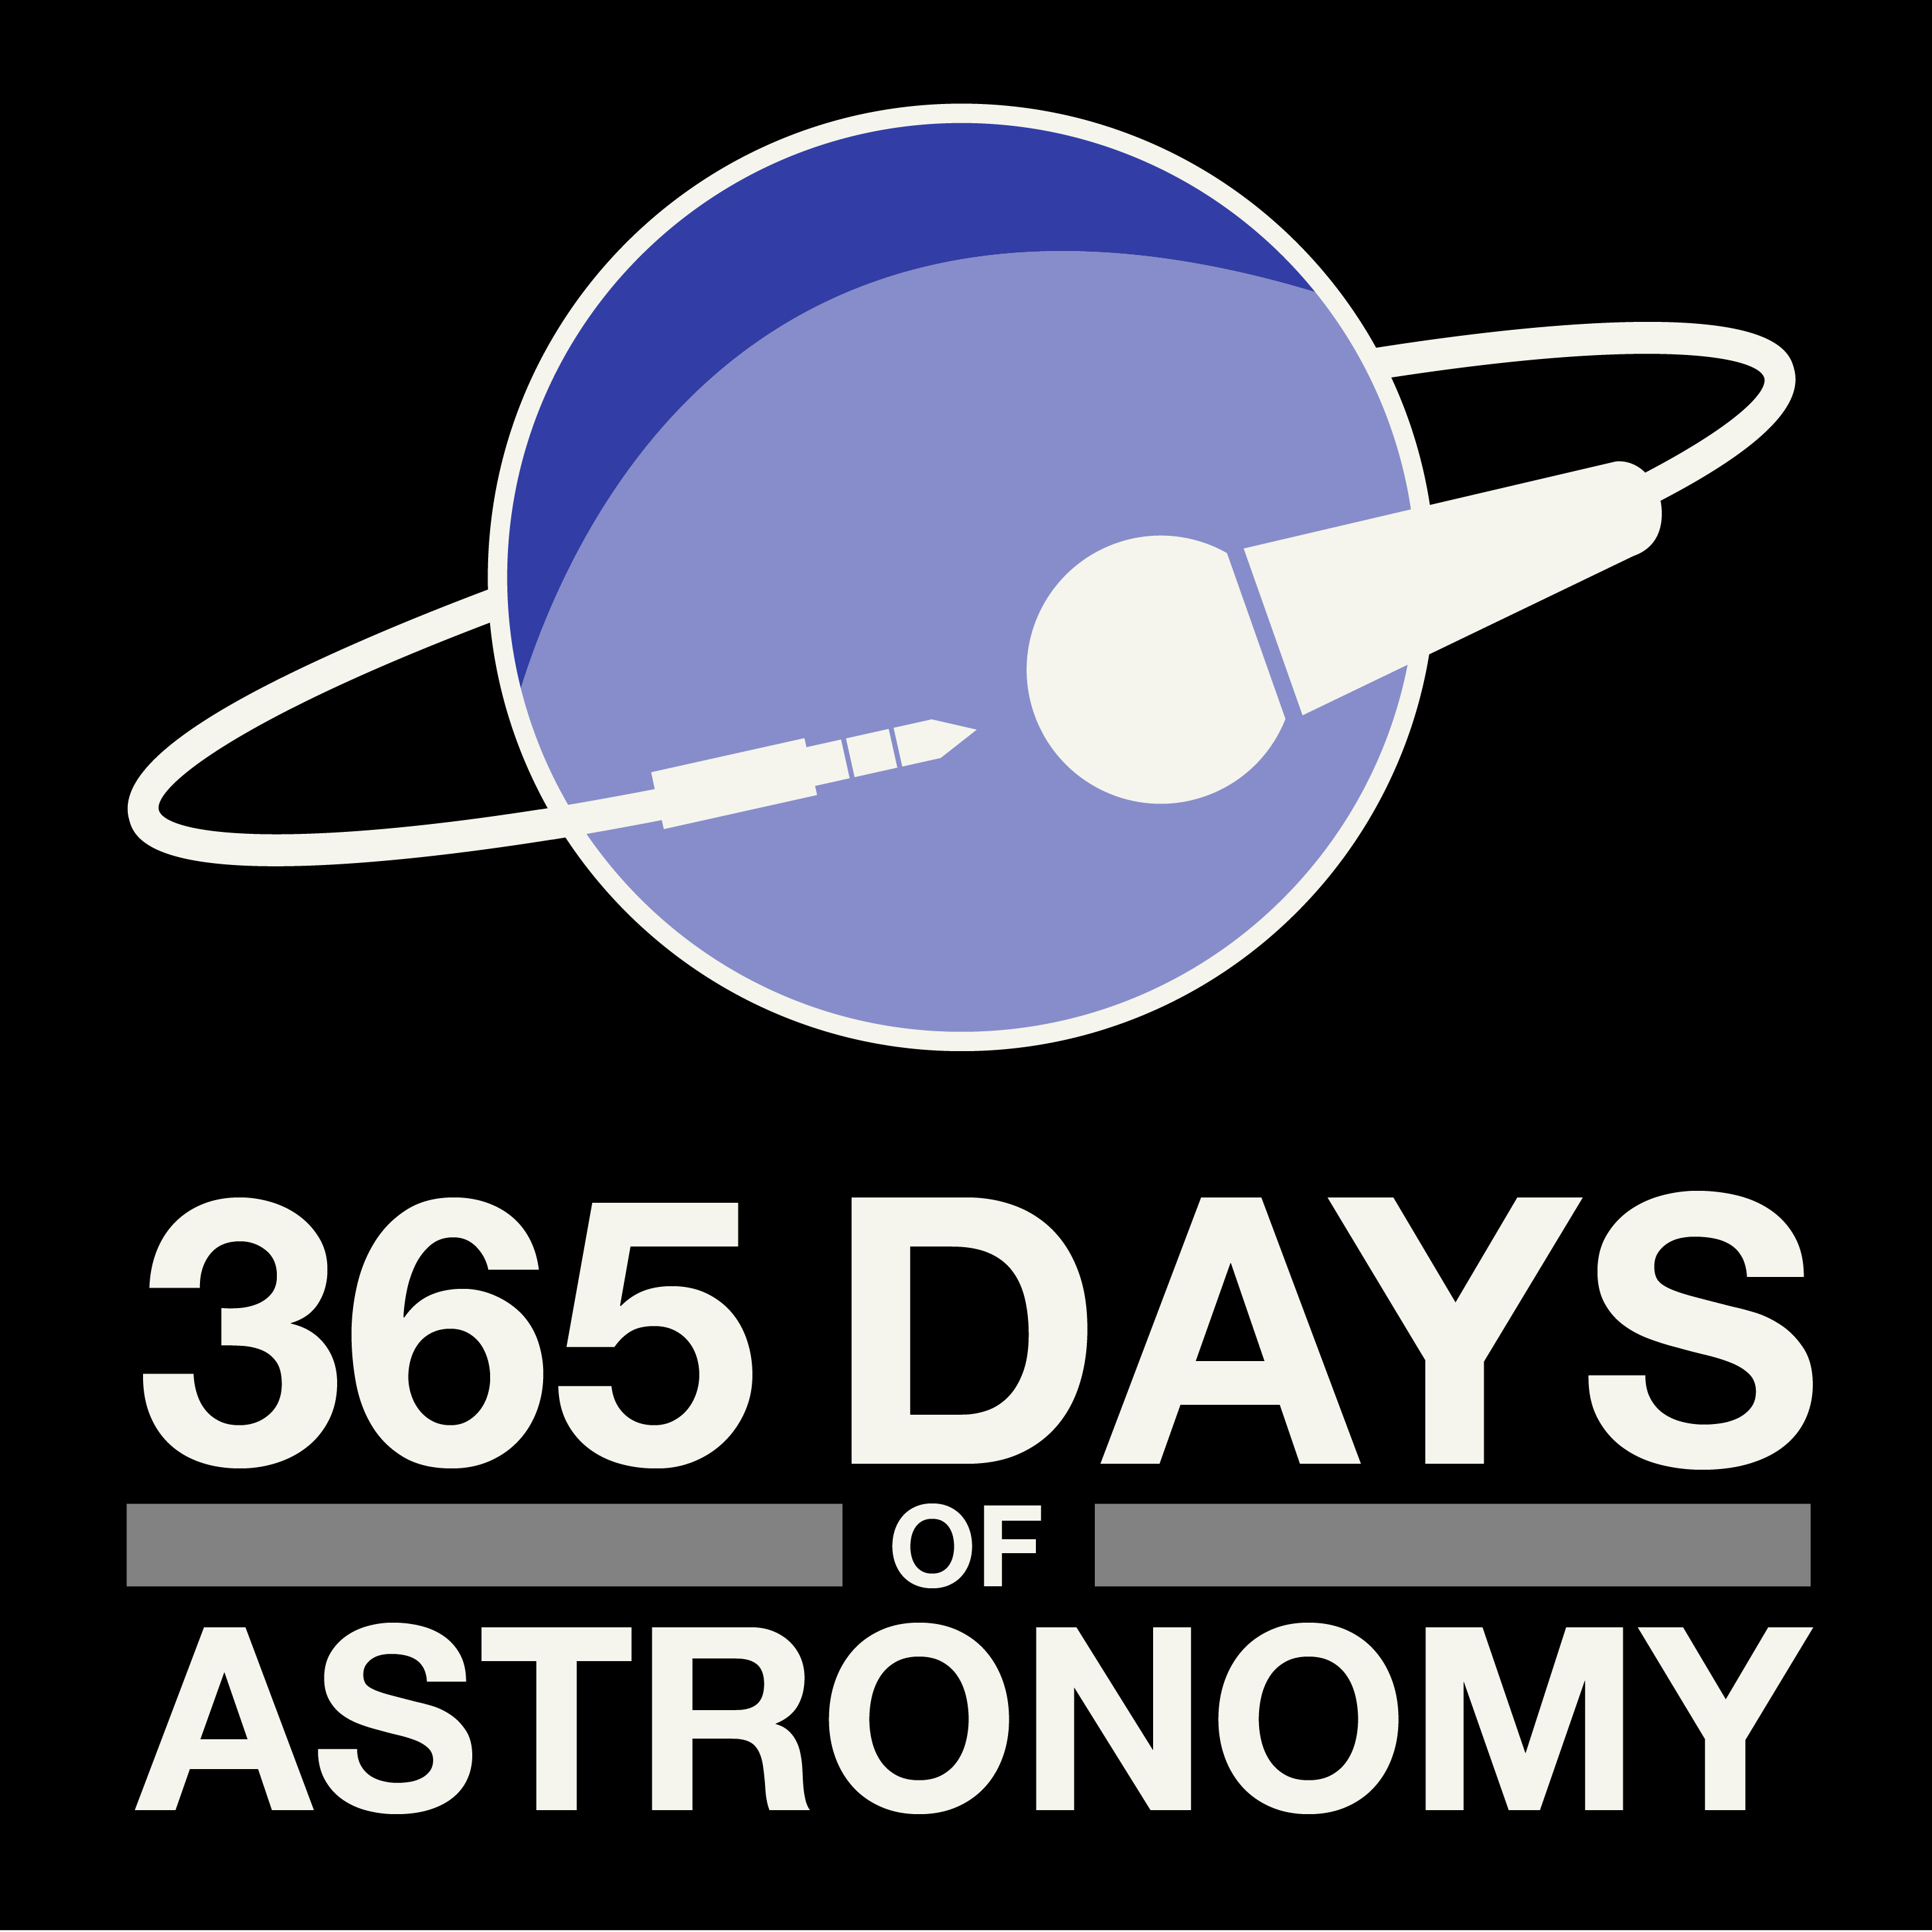 Daily Podcast Enters Second Decade of Sharing Astronomy With the World